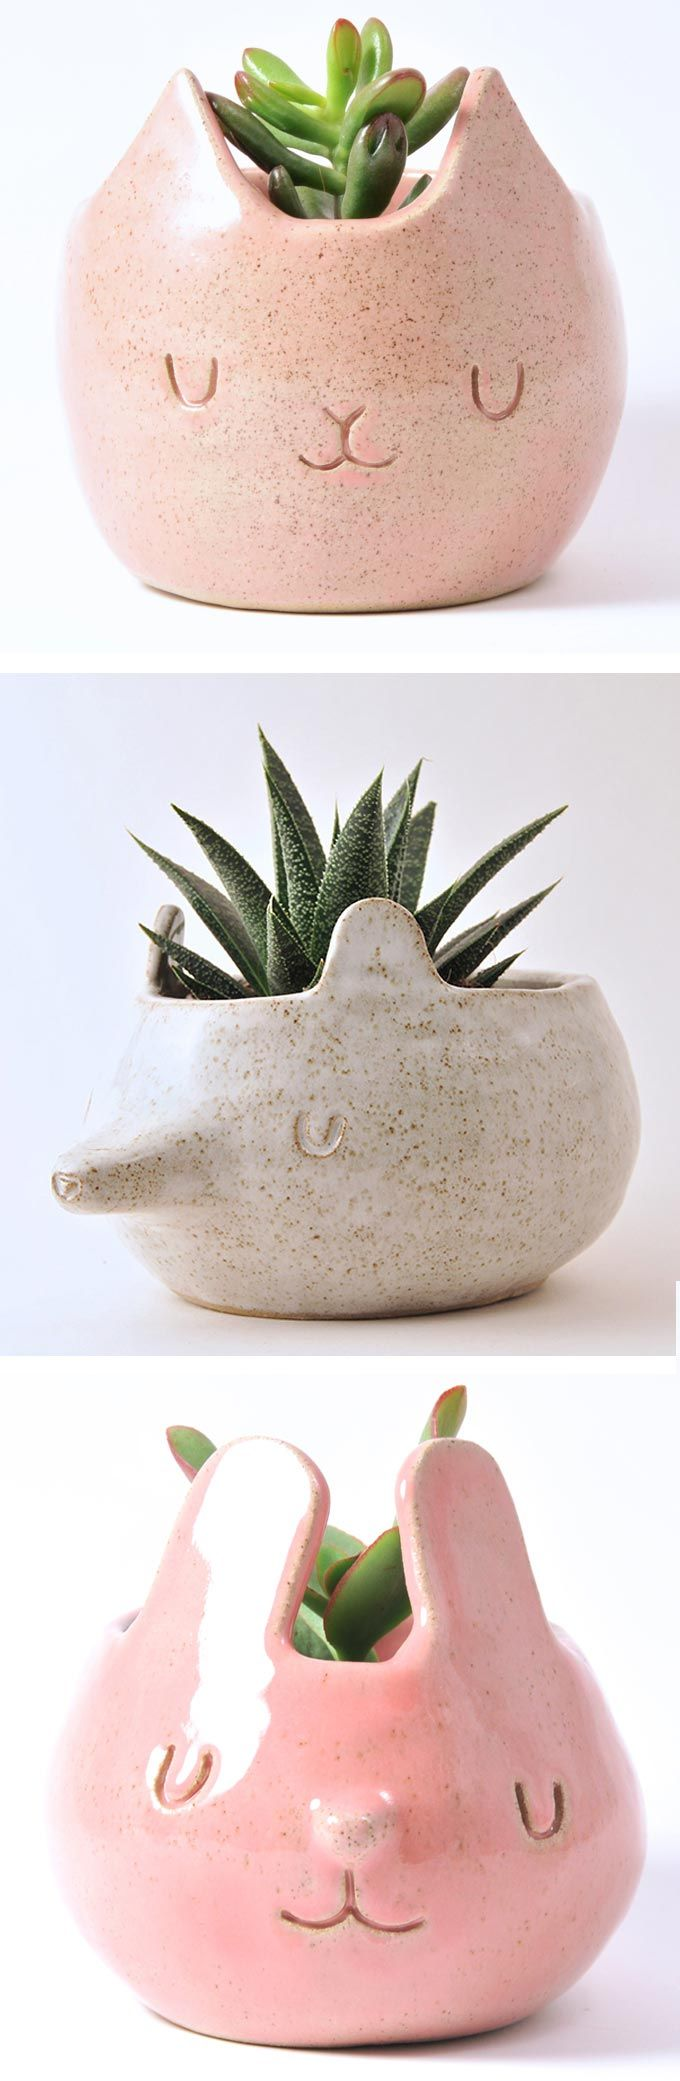 Design Forest Creates Adorable Ceramic Companions for Plants